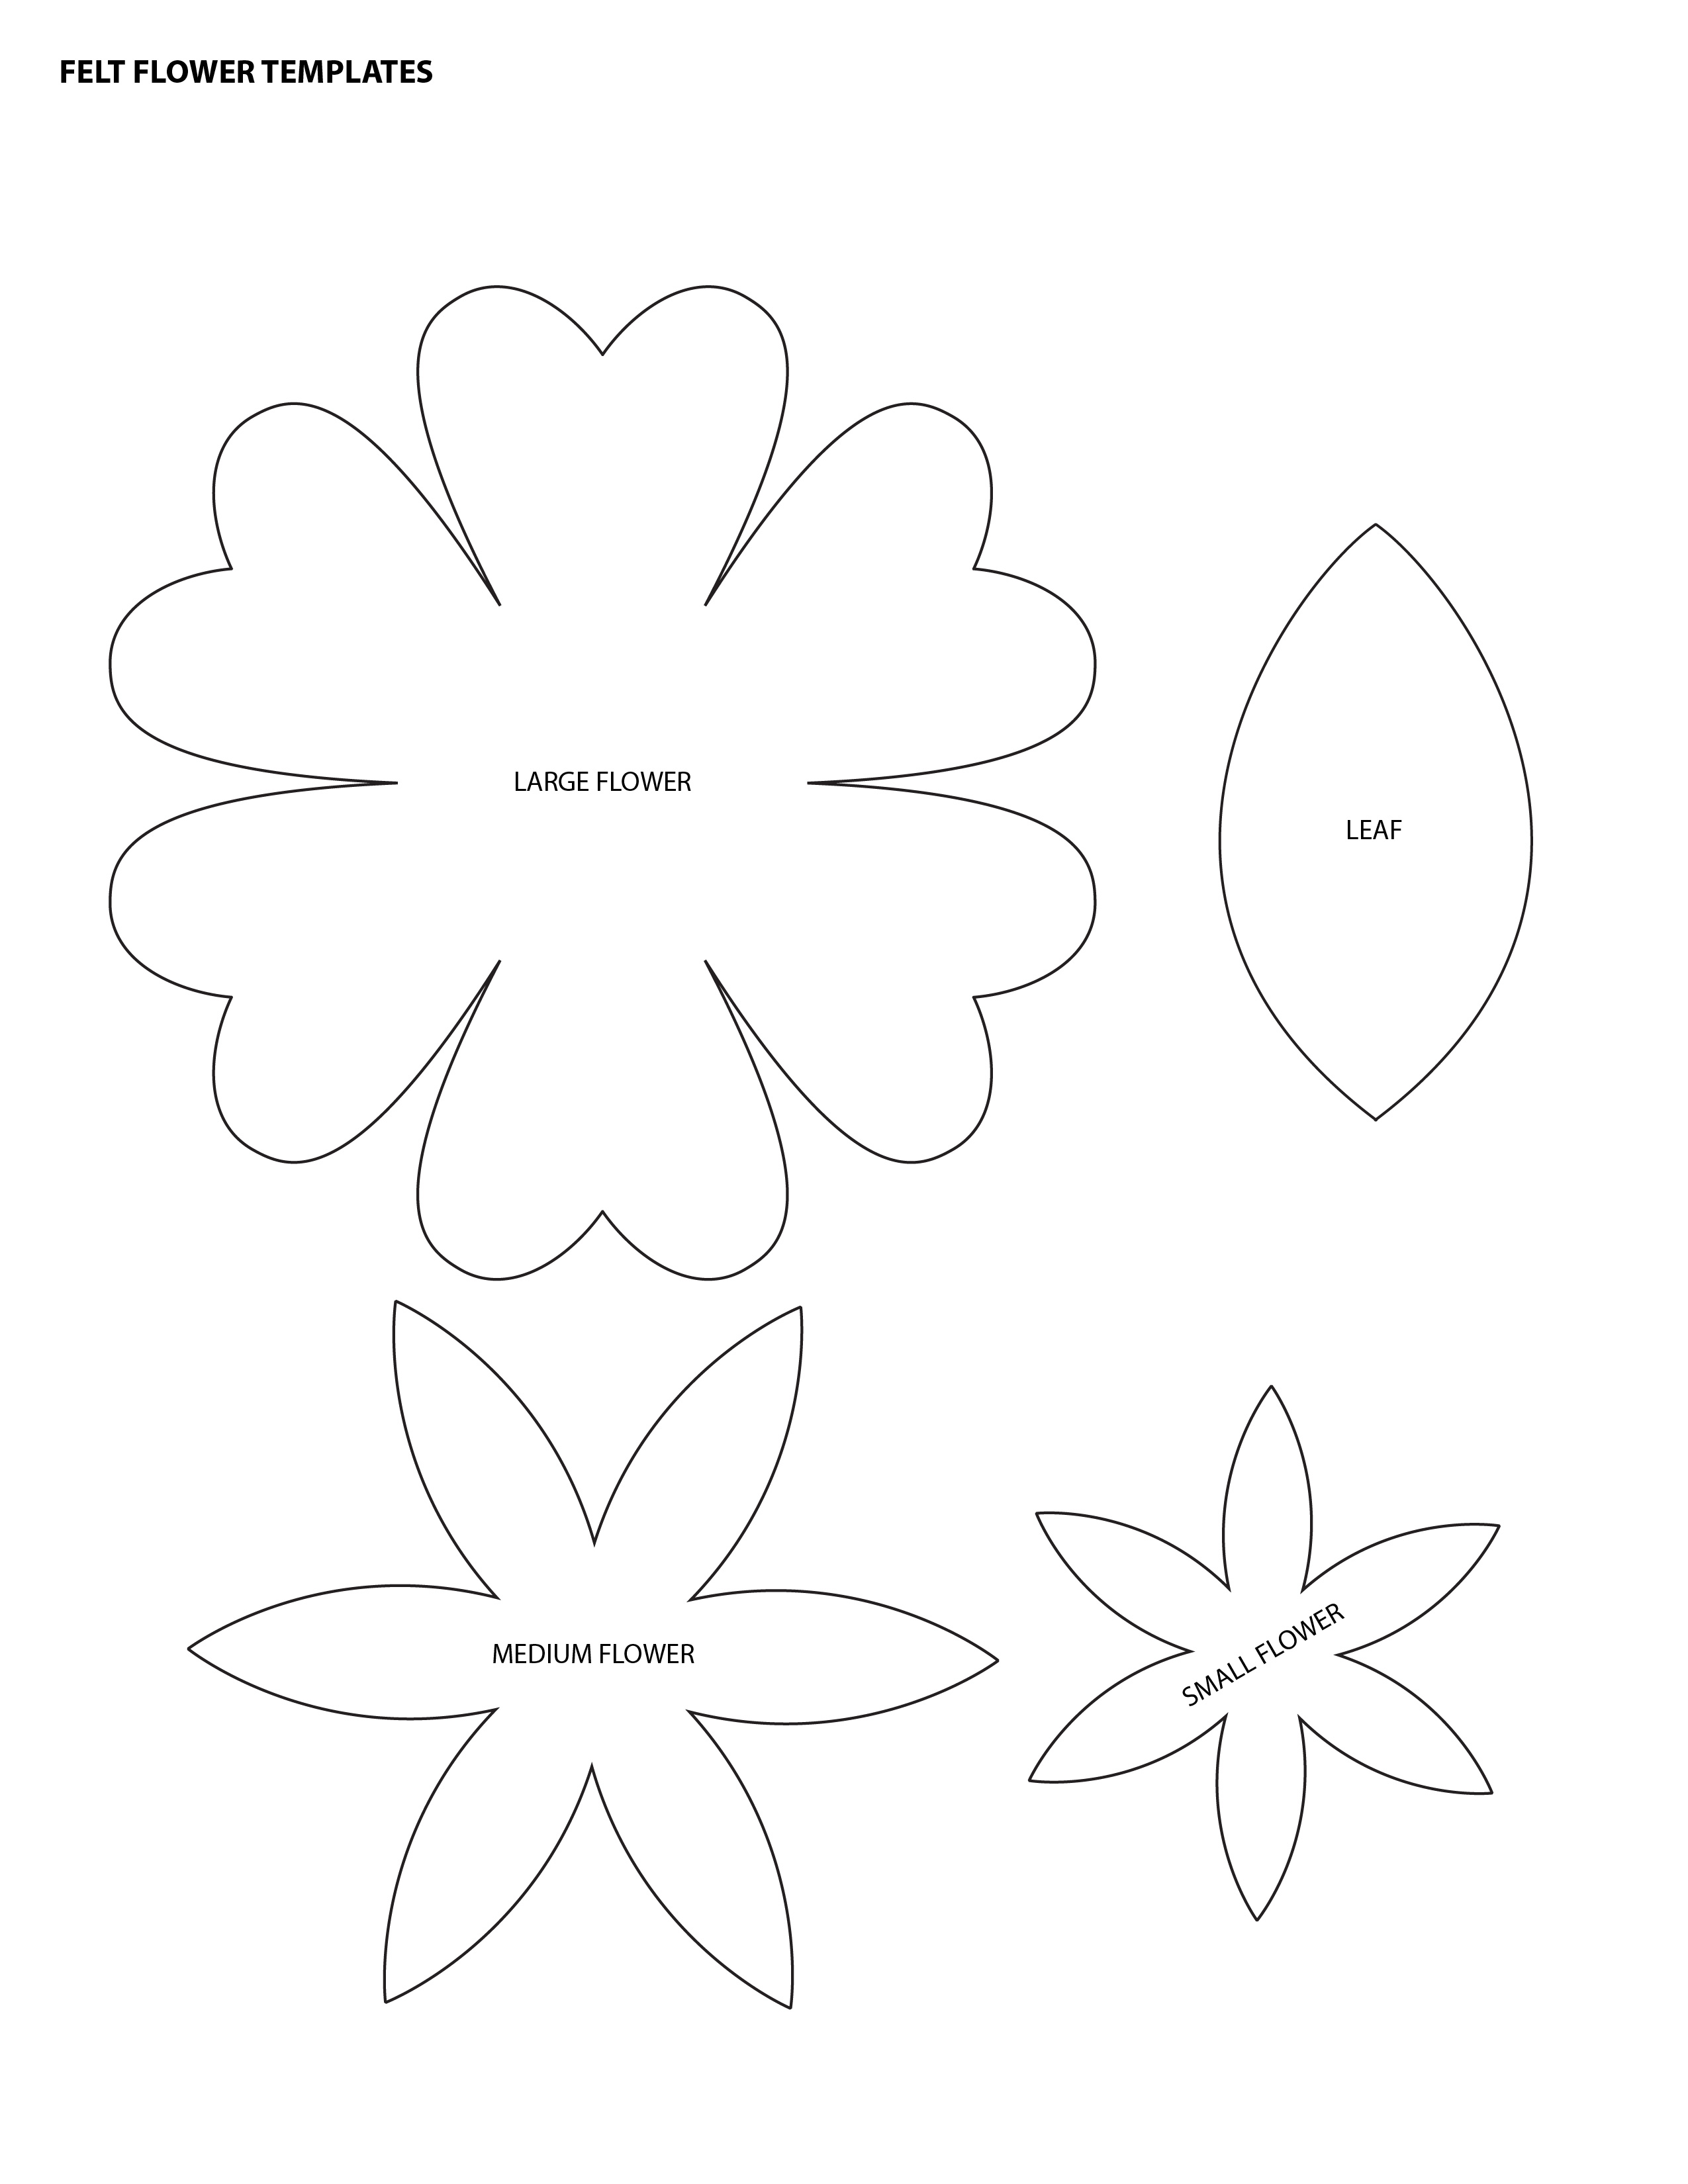 Free Flower Templates Download Free Clip Art Free Clip Art On Clipart Library